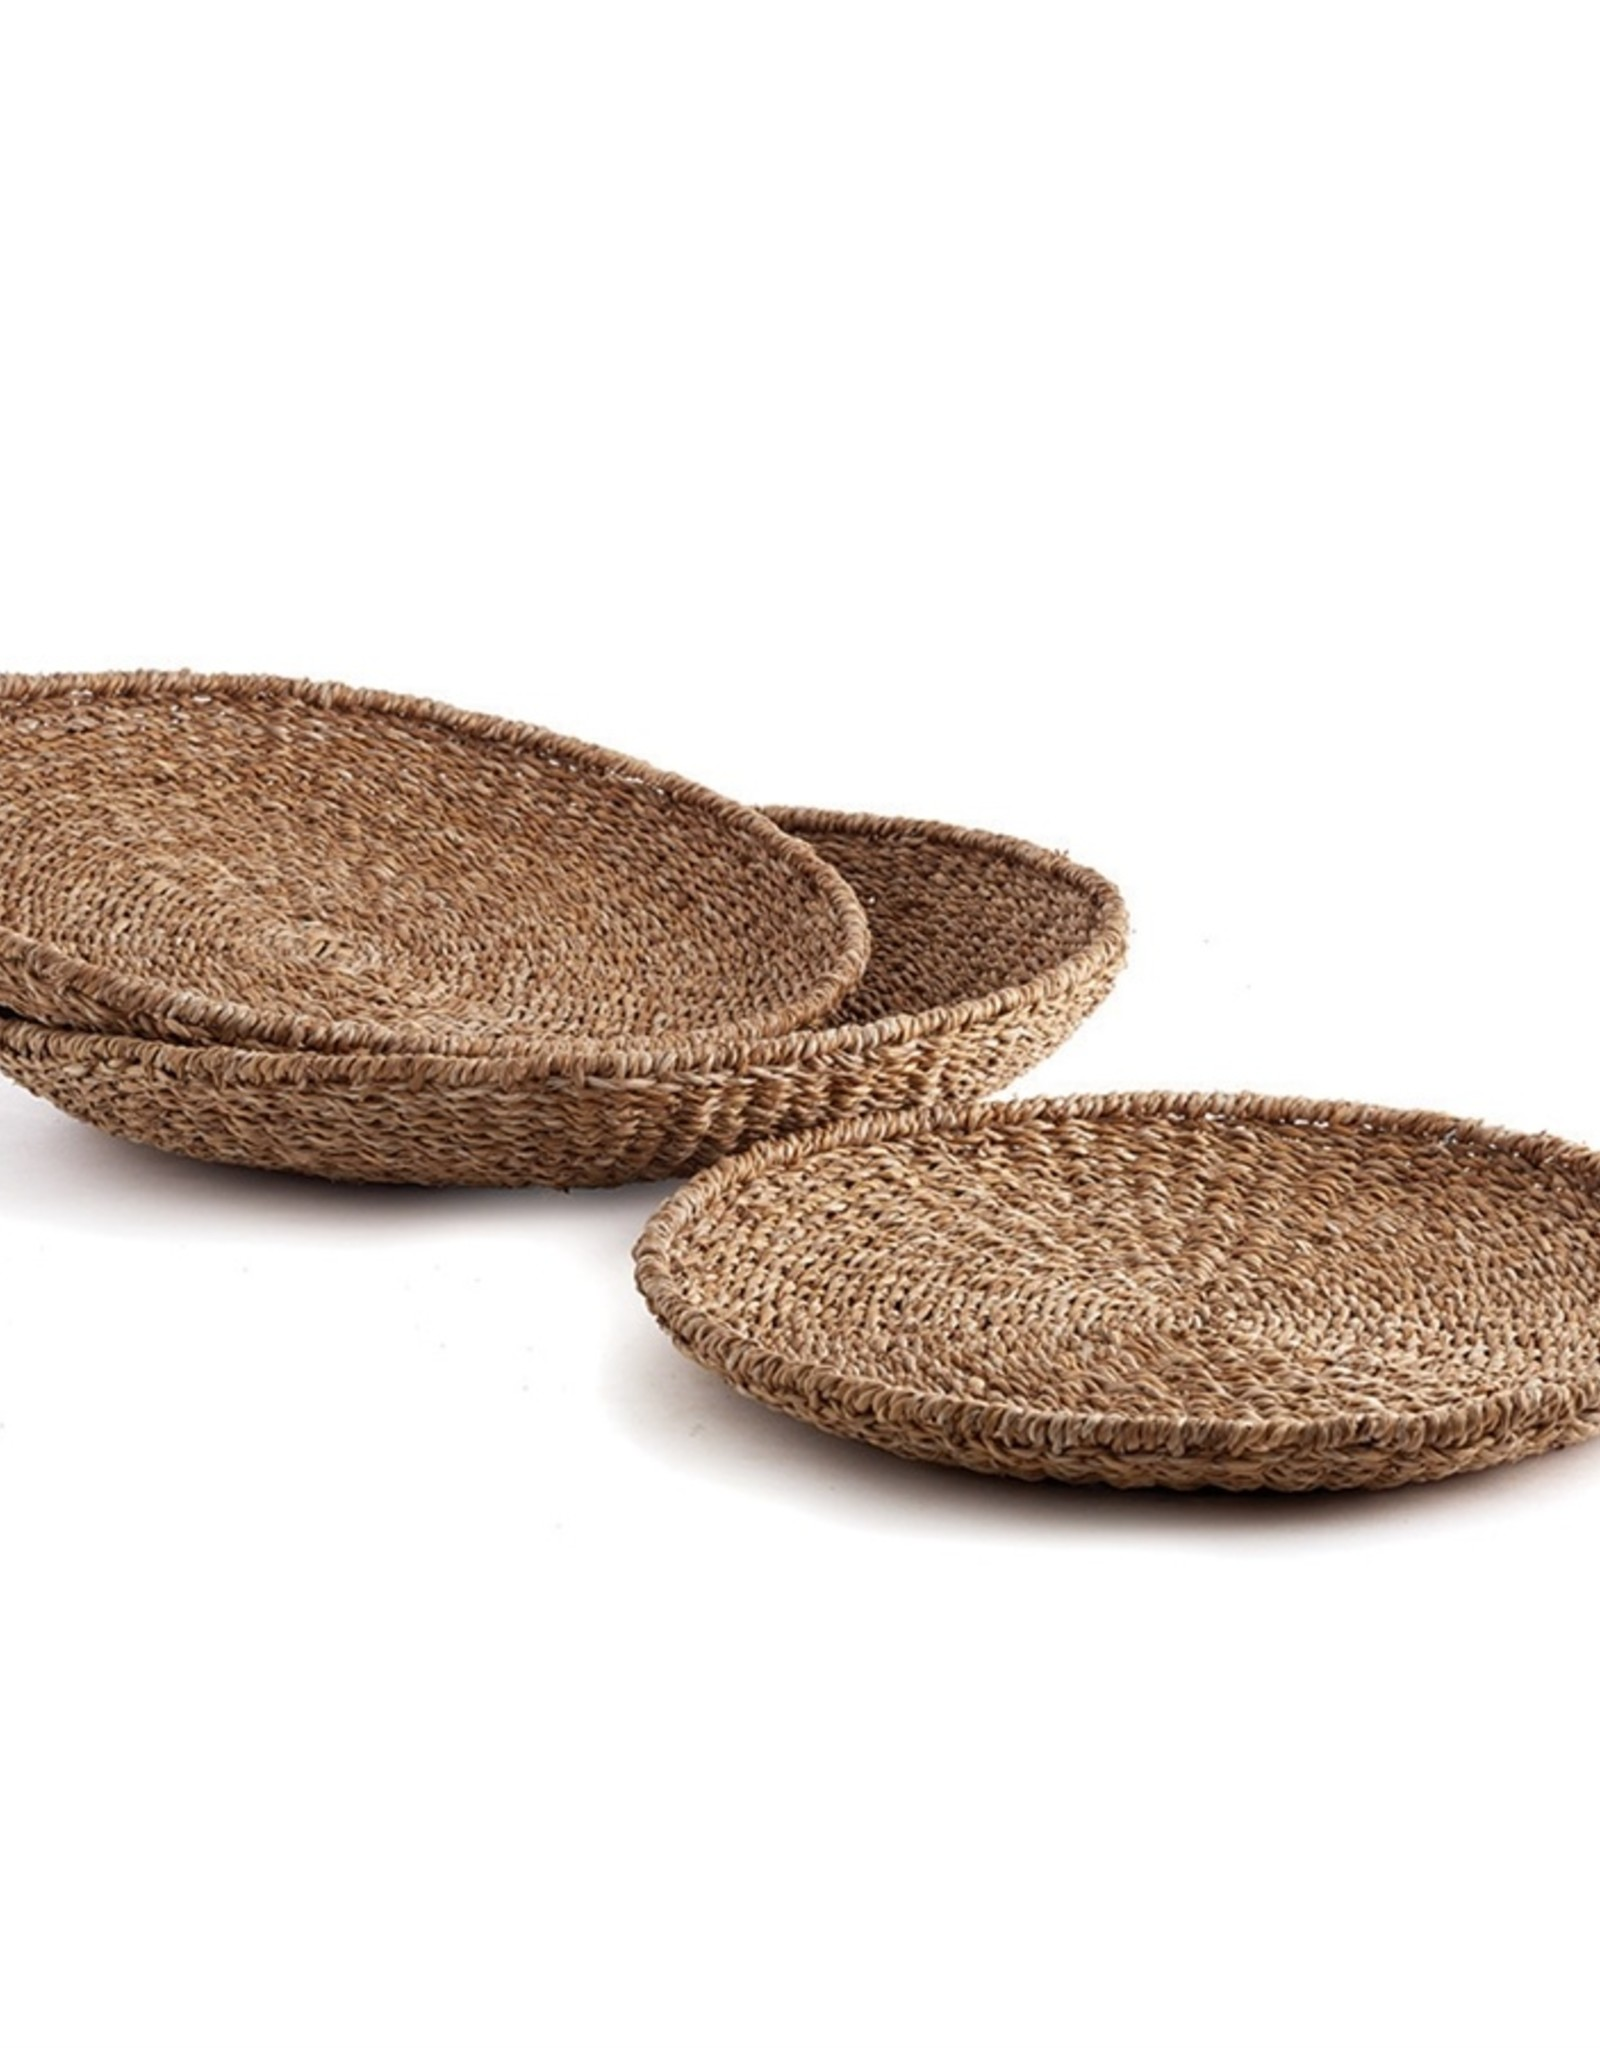 Napa Home and Garden Seagrass Round Trays